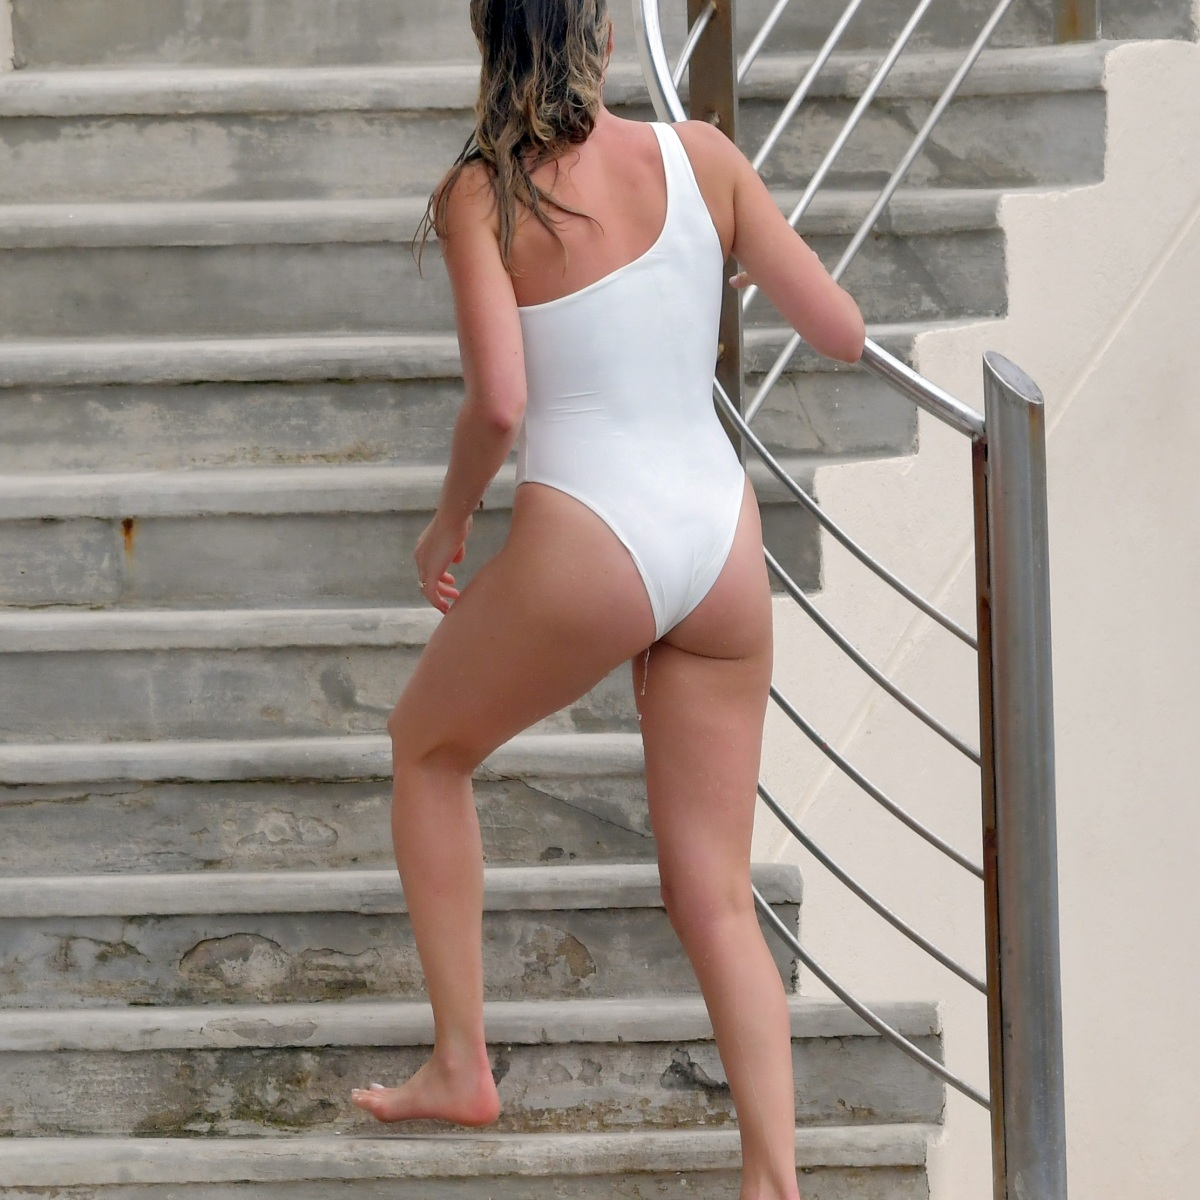 Margot Robbie Brings All the Heat to Cannes in a Revealing, White Swimsuit — See Pics!